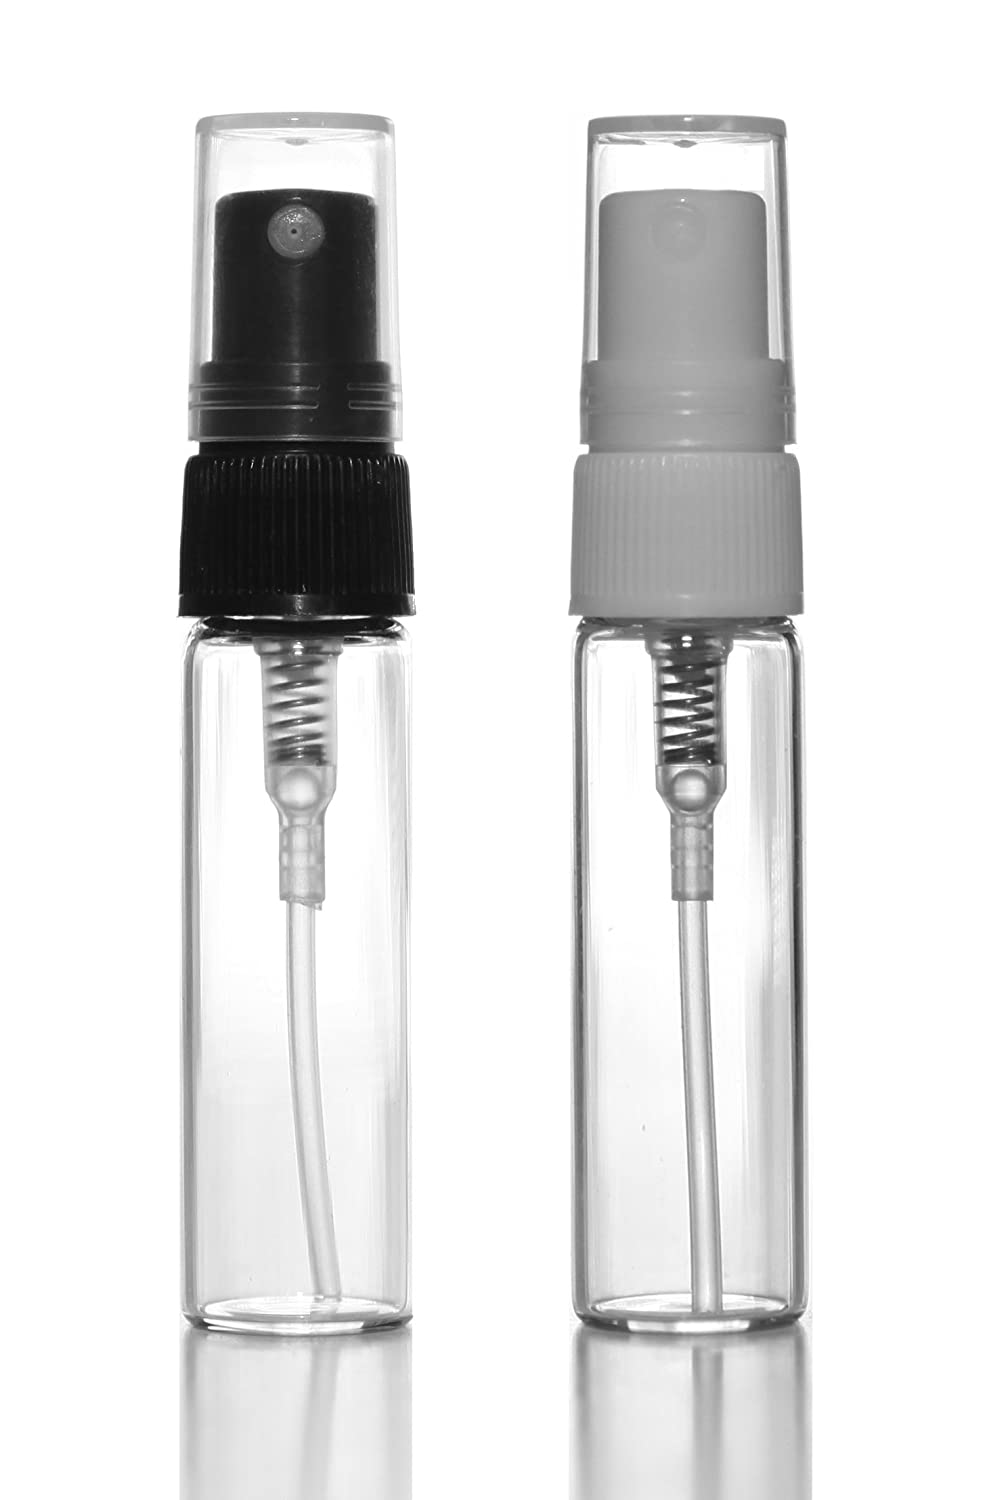 Riverrun Glass Perfume Atomizers, Black and White Fine Mist Bottles 4ml .14 oz Set of 2 1 of each color